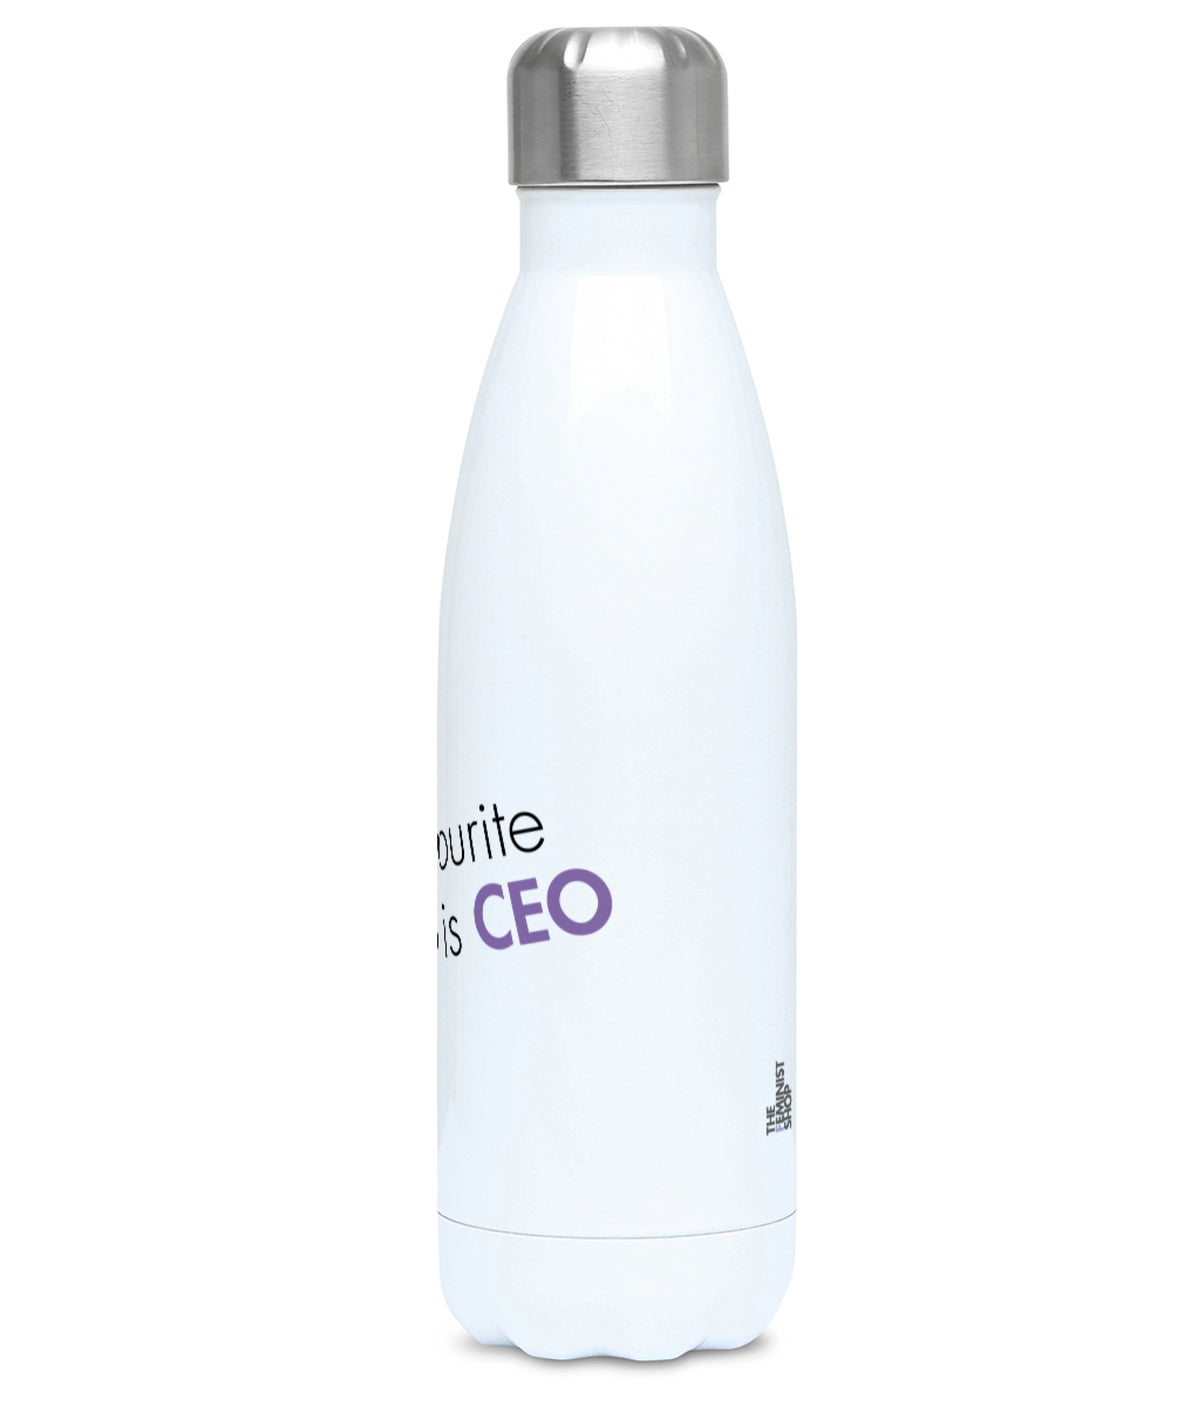 Feminist Water Bottle - My Favourite Position Is CEO - Right